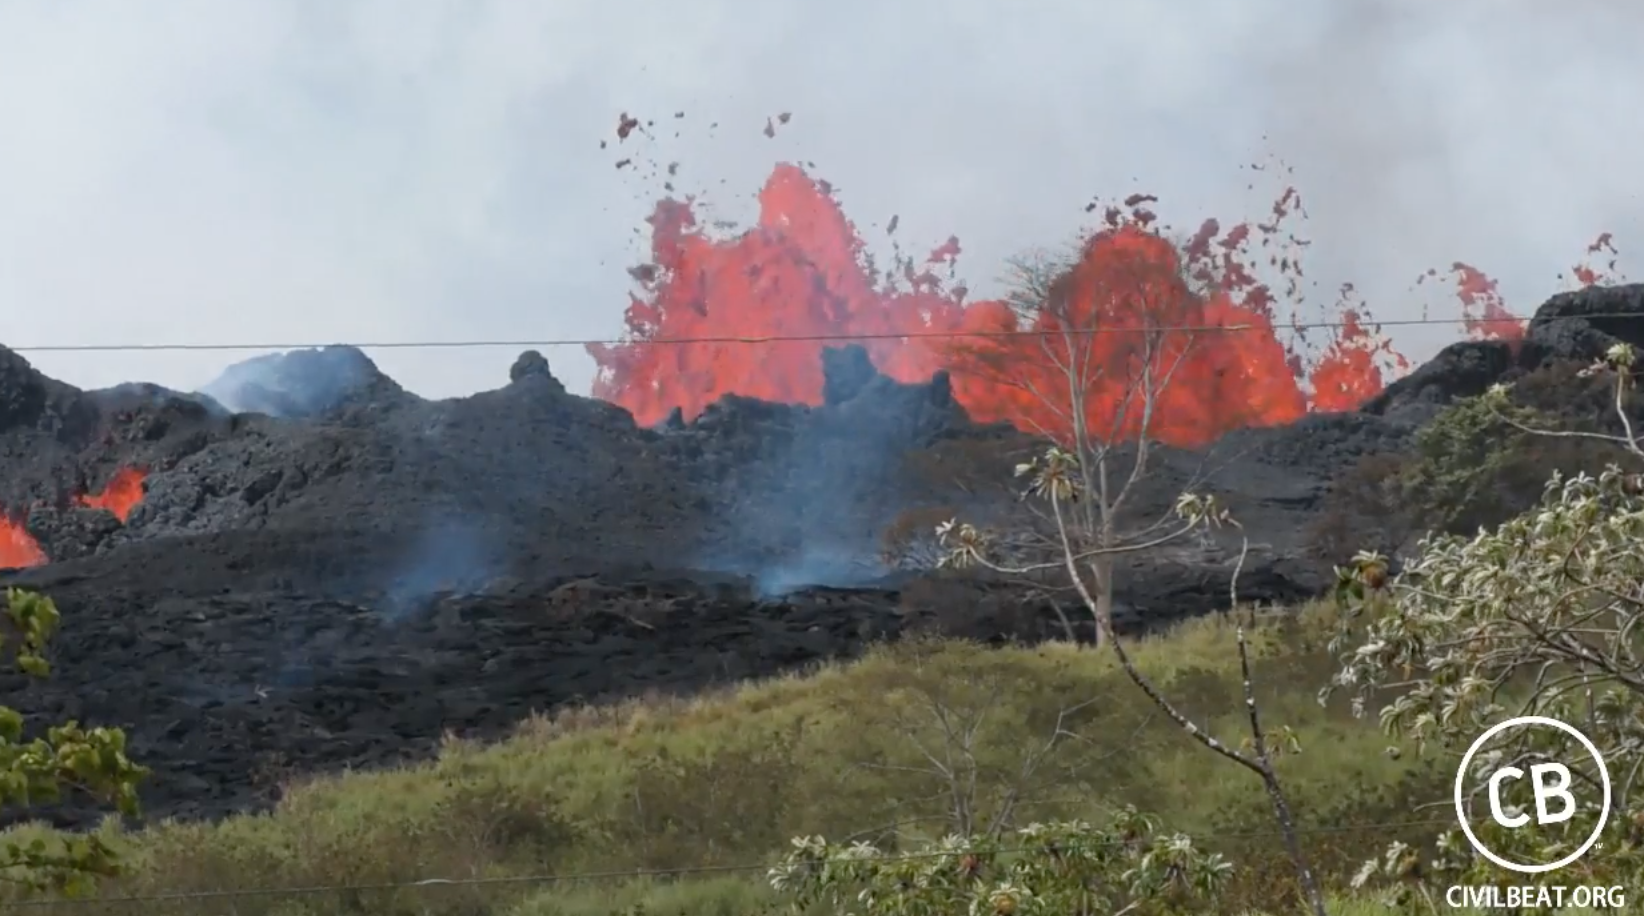 Hawaii Map Lava.Hawaii Volcano Kilauea New Usgs Maps Capture Lava Flows And Spread